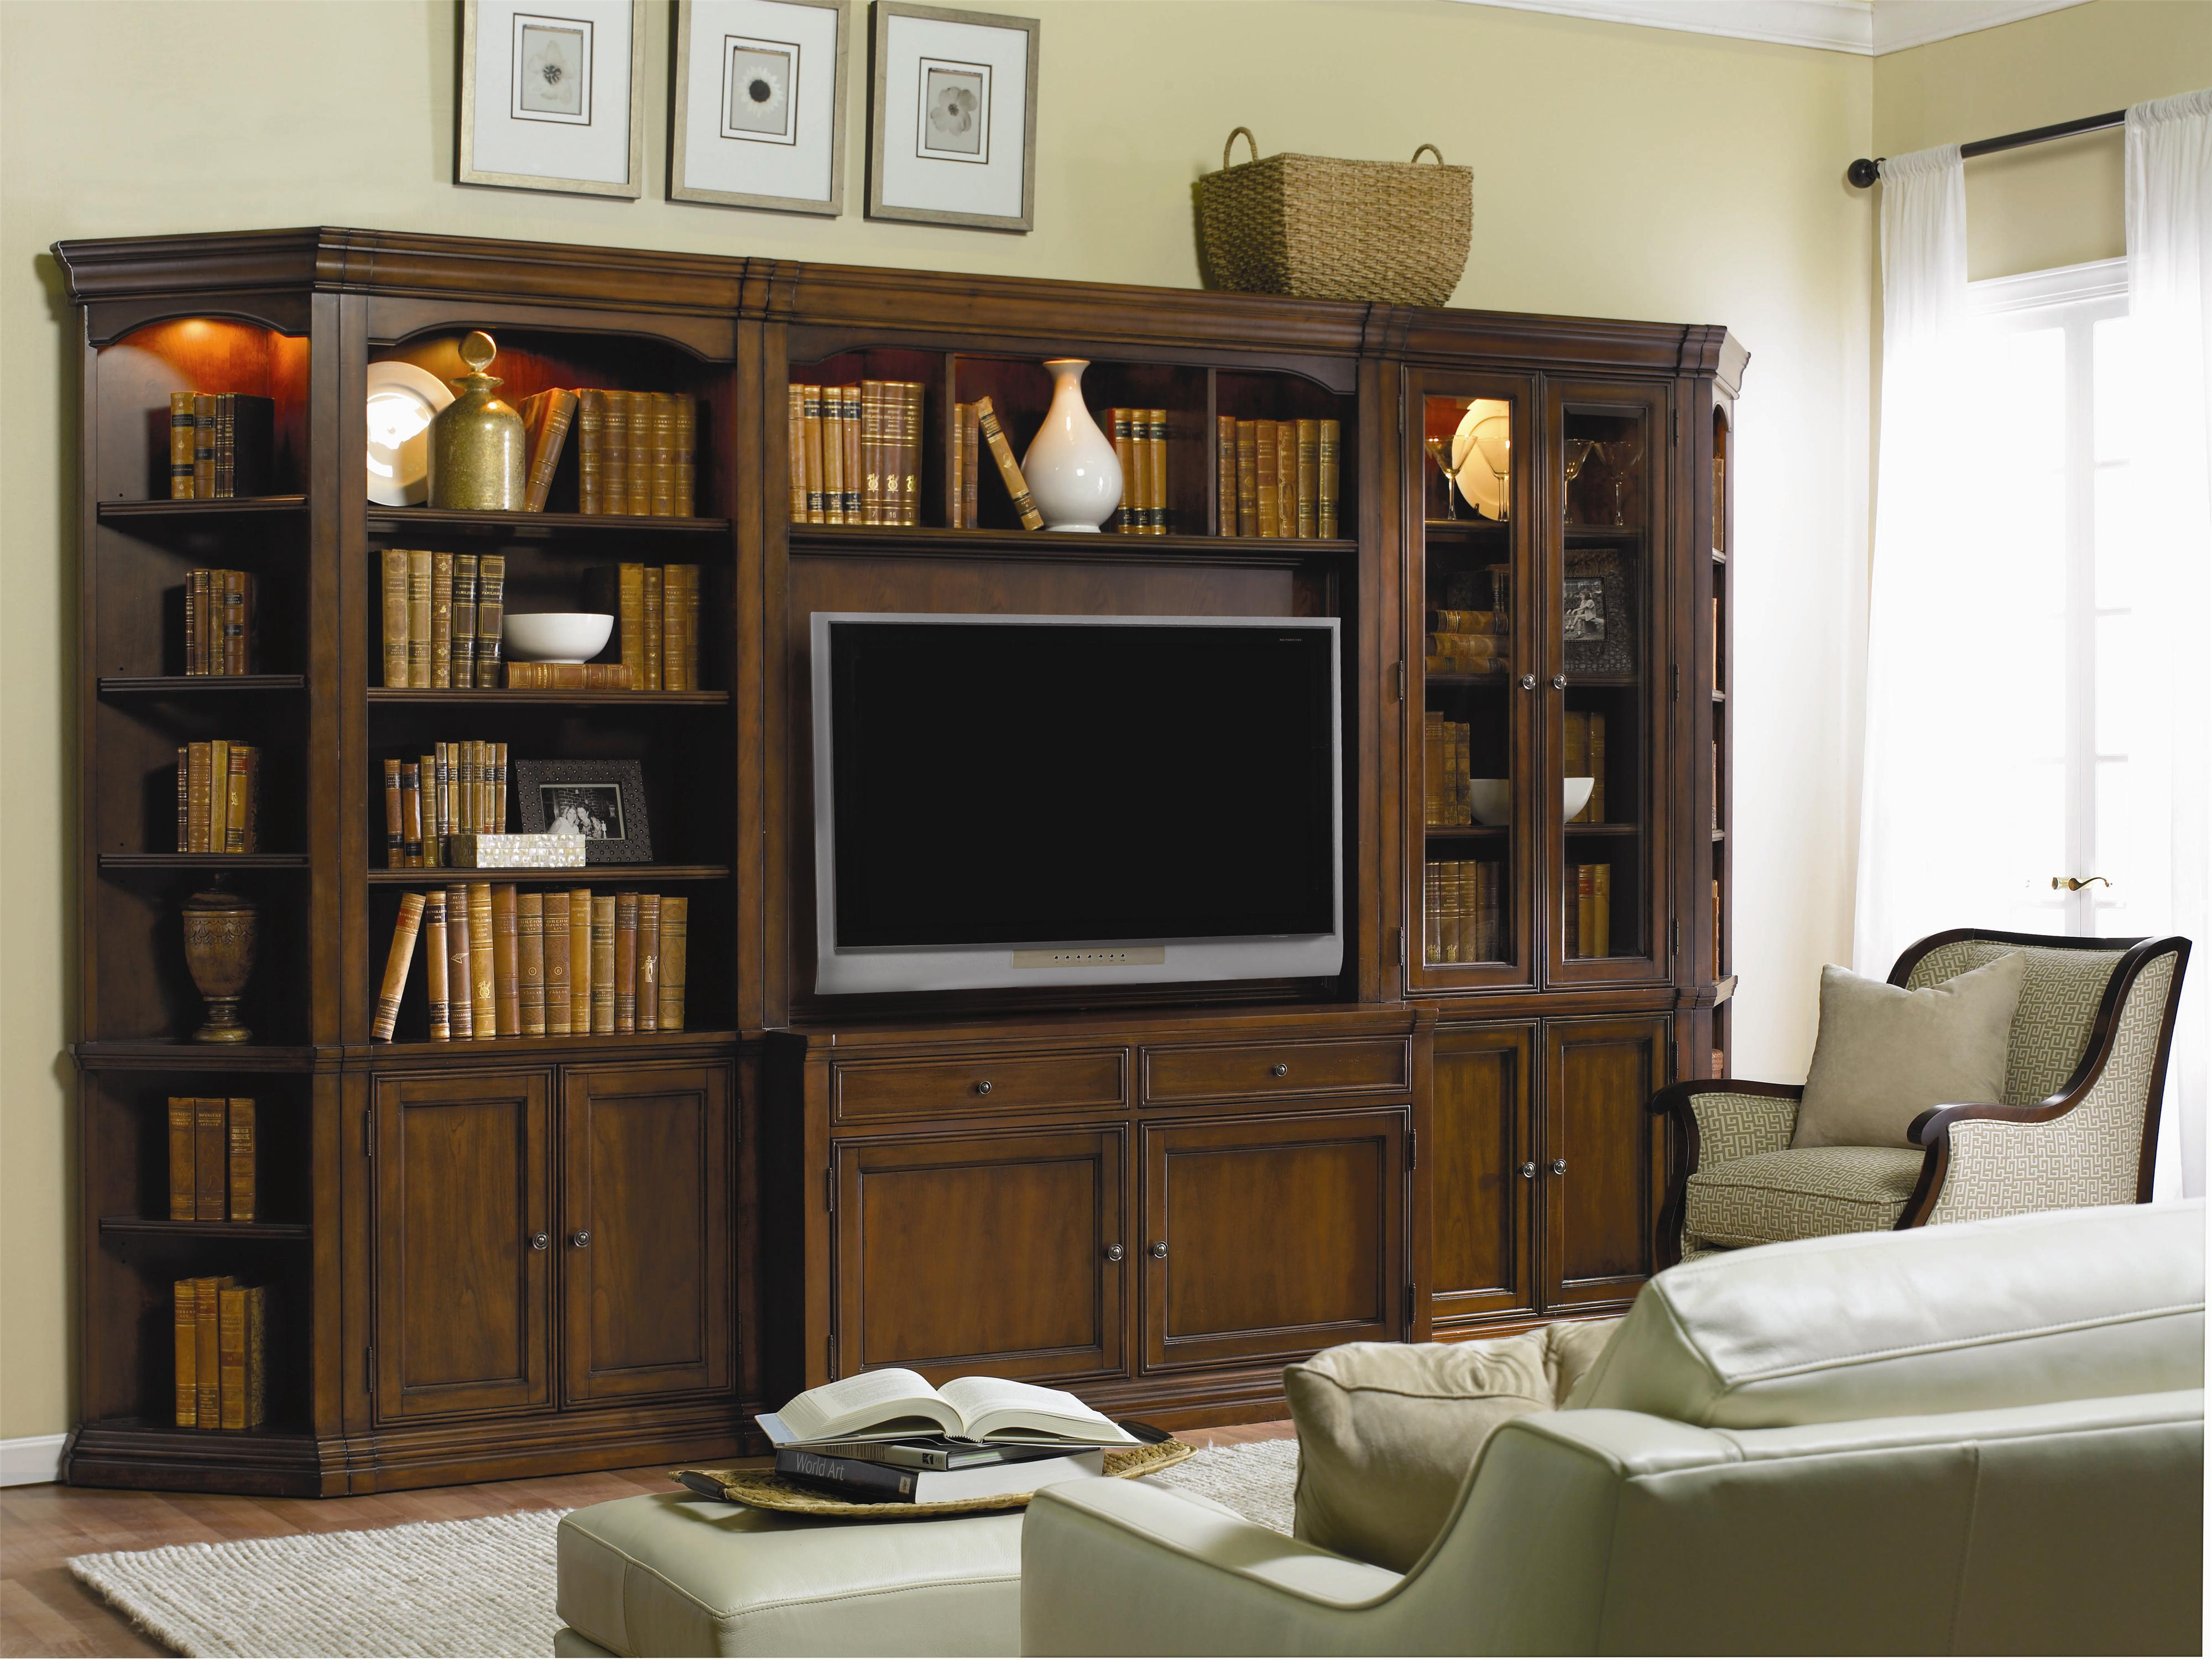 Hooker Furniture Cherry Creek  Modular Wall System - Item Number: 258-70-450+446+554+447